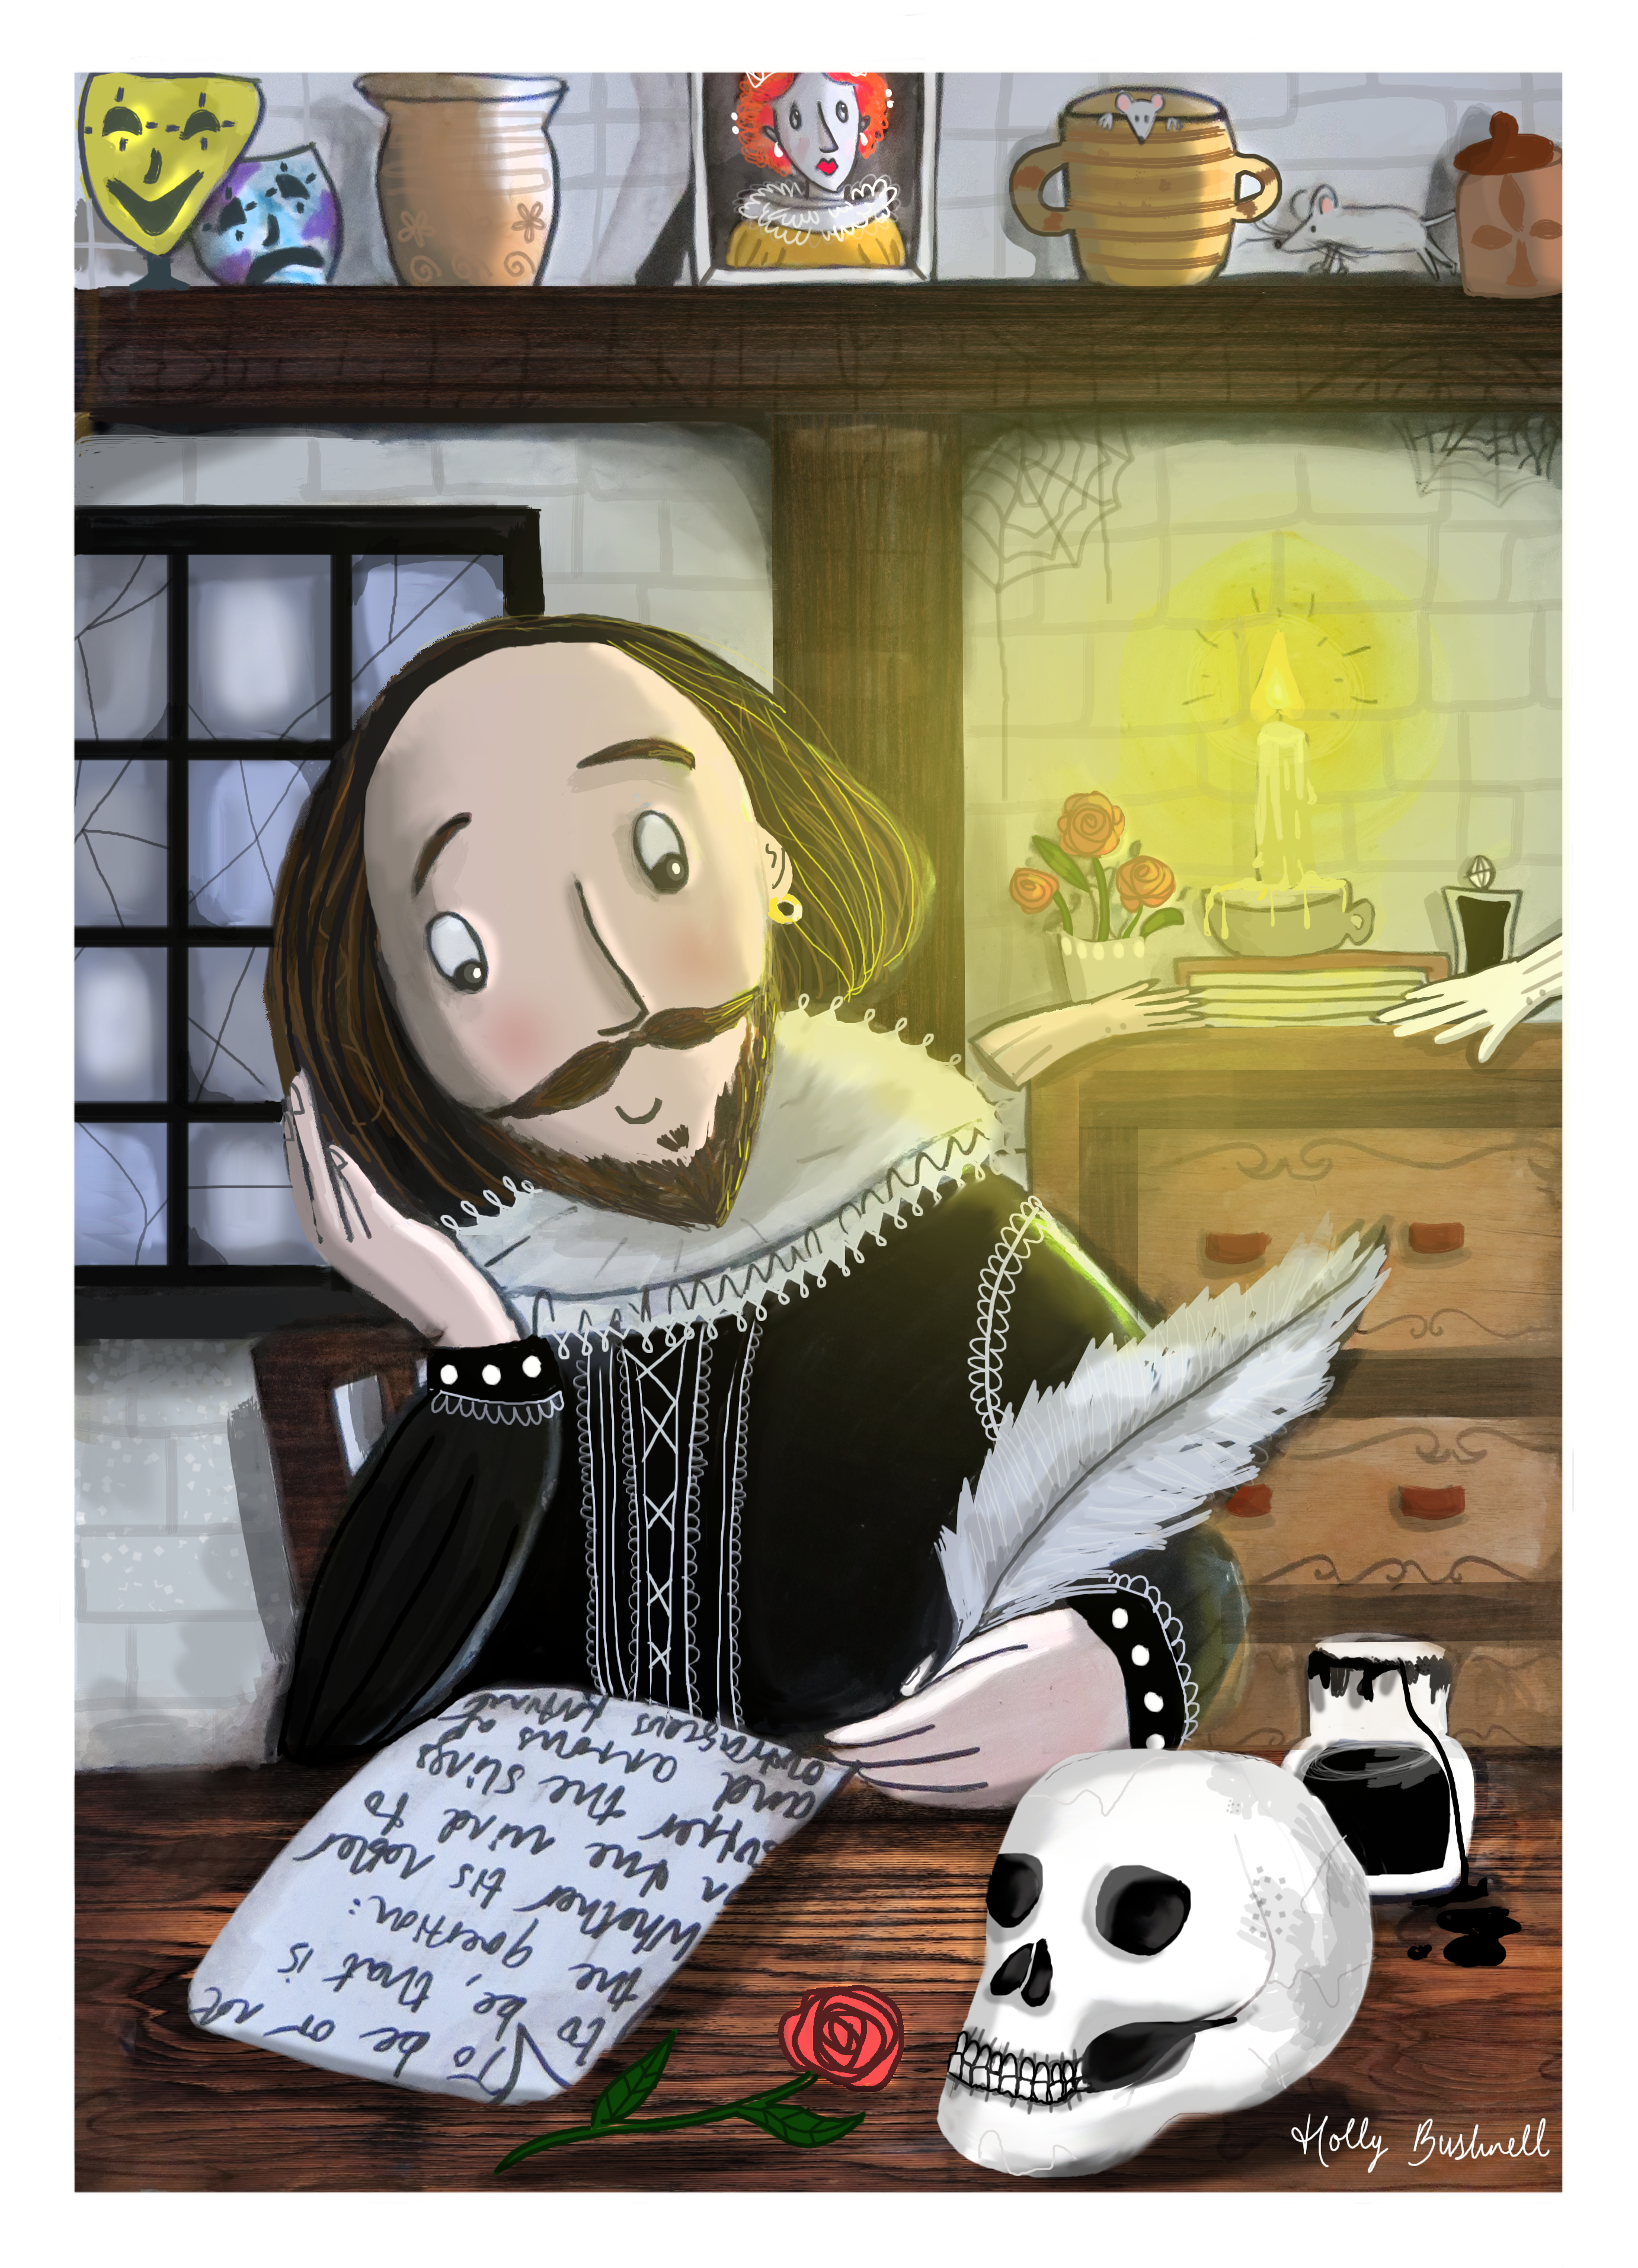 The Bard at Work